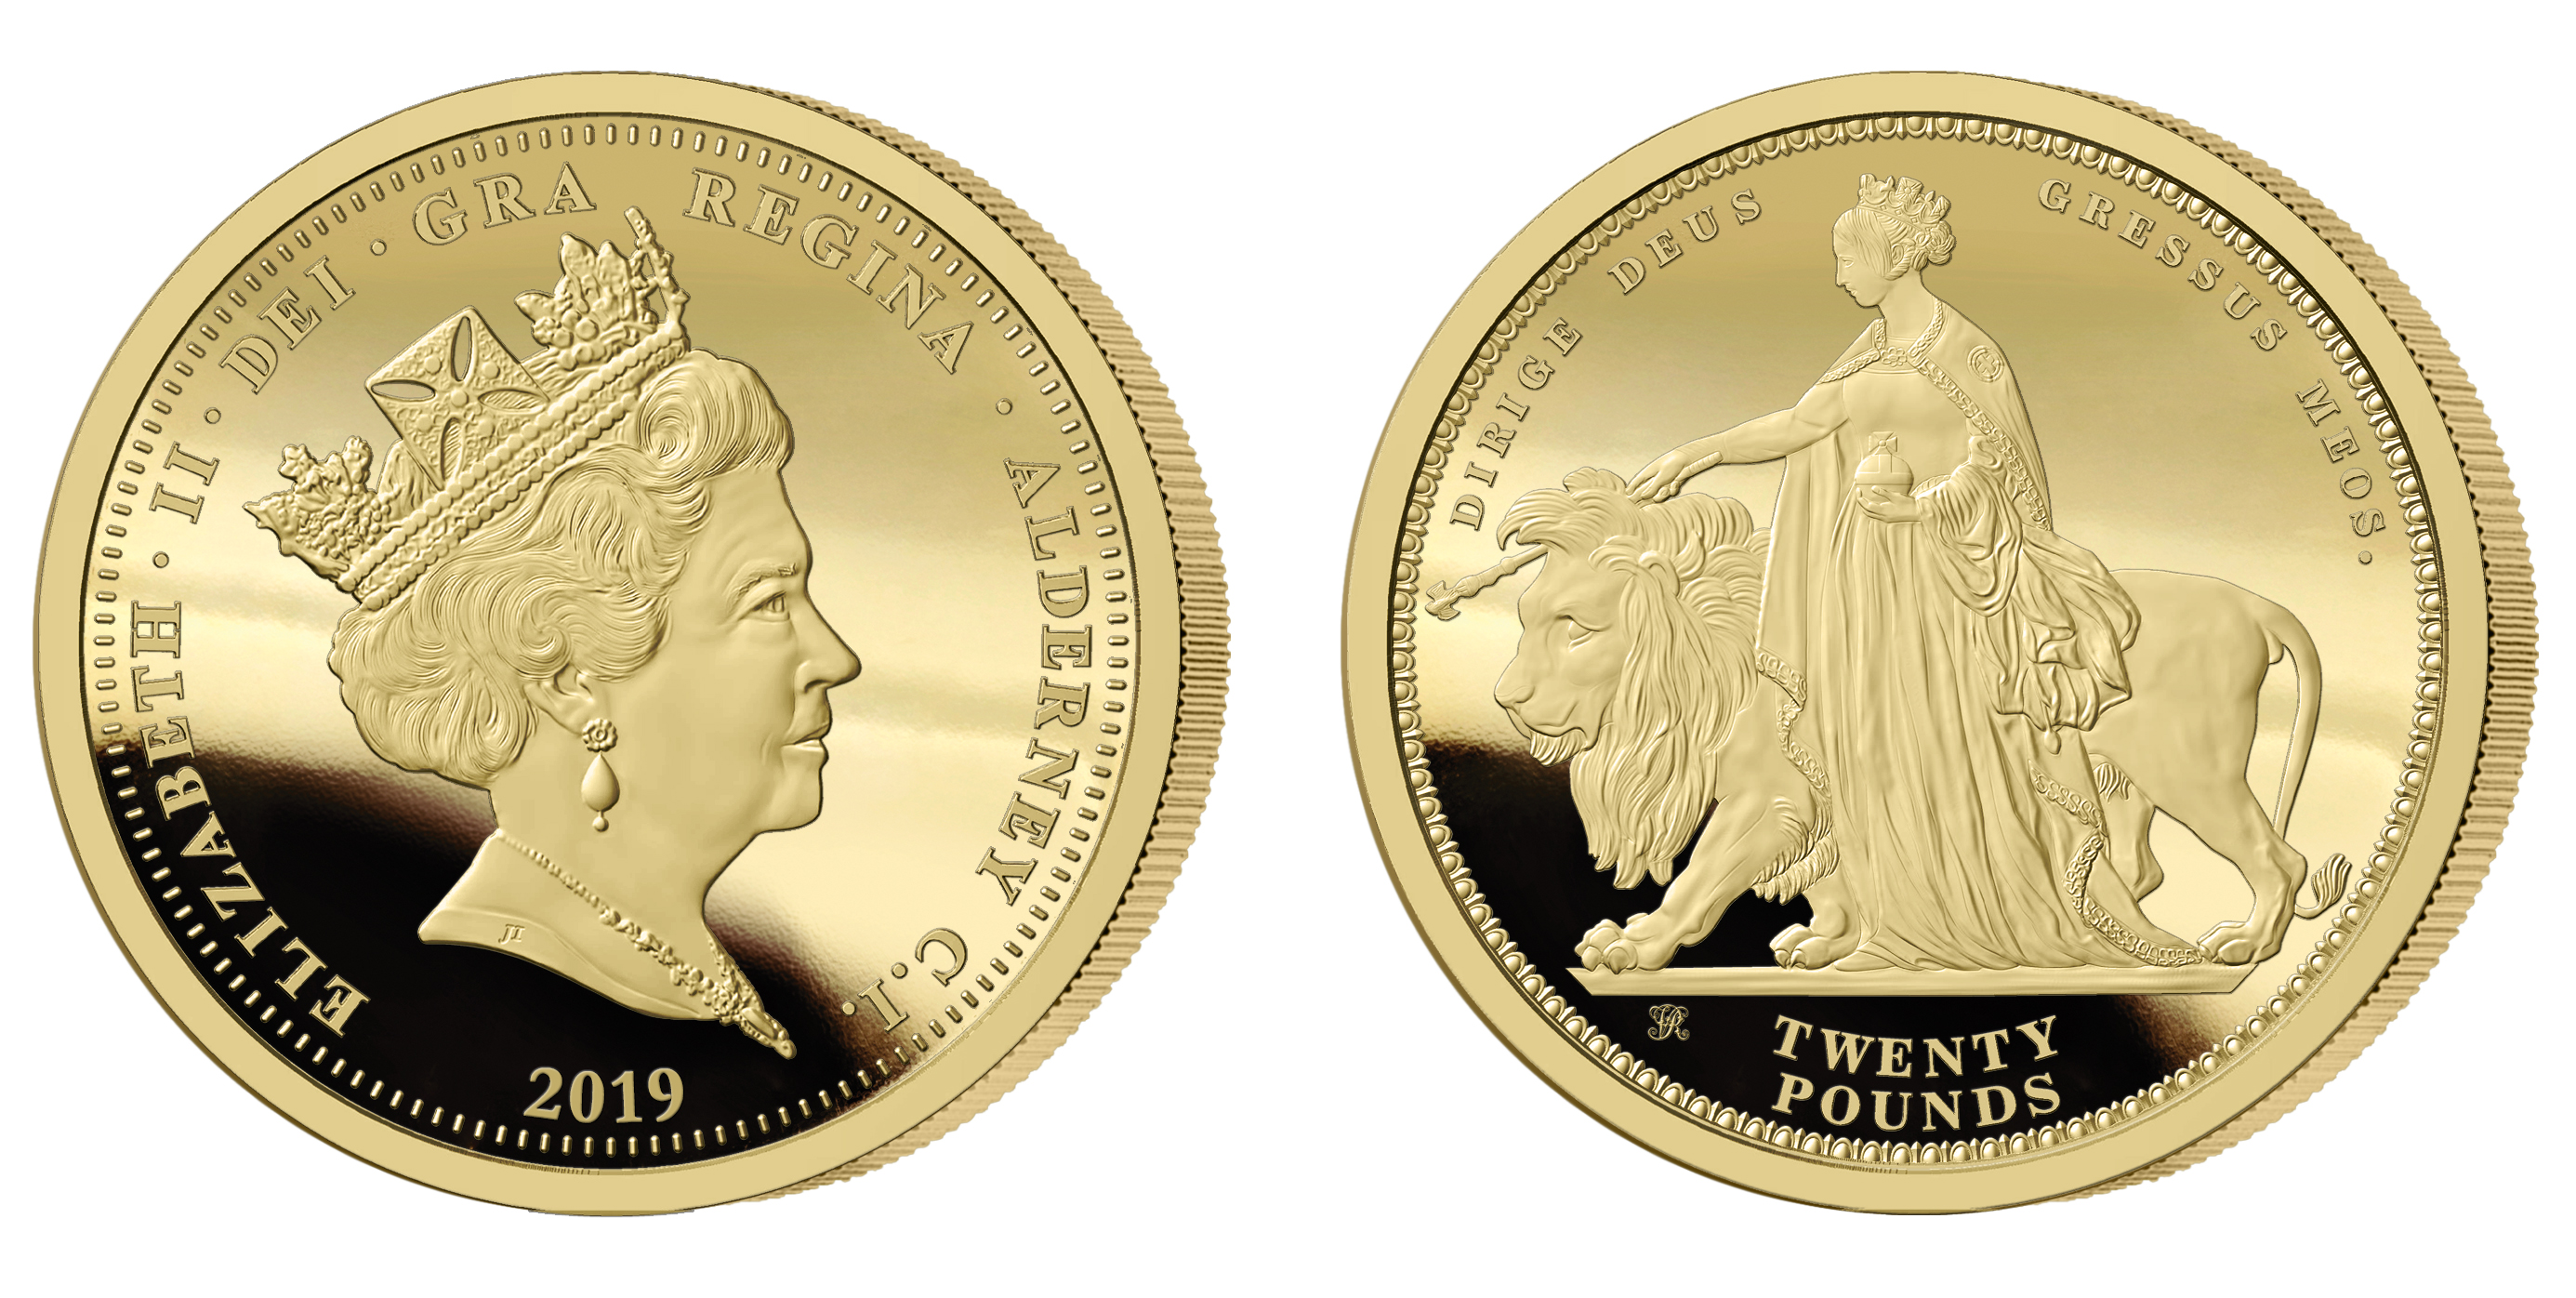 The 2019 Queen Victoria 200th Anniversary 24 Carat Gold £20 Sovereign